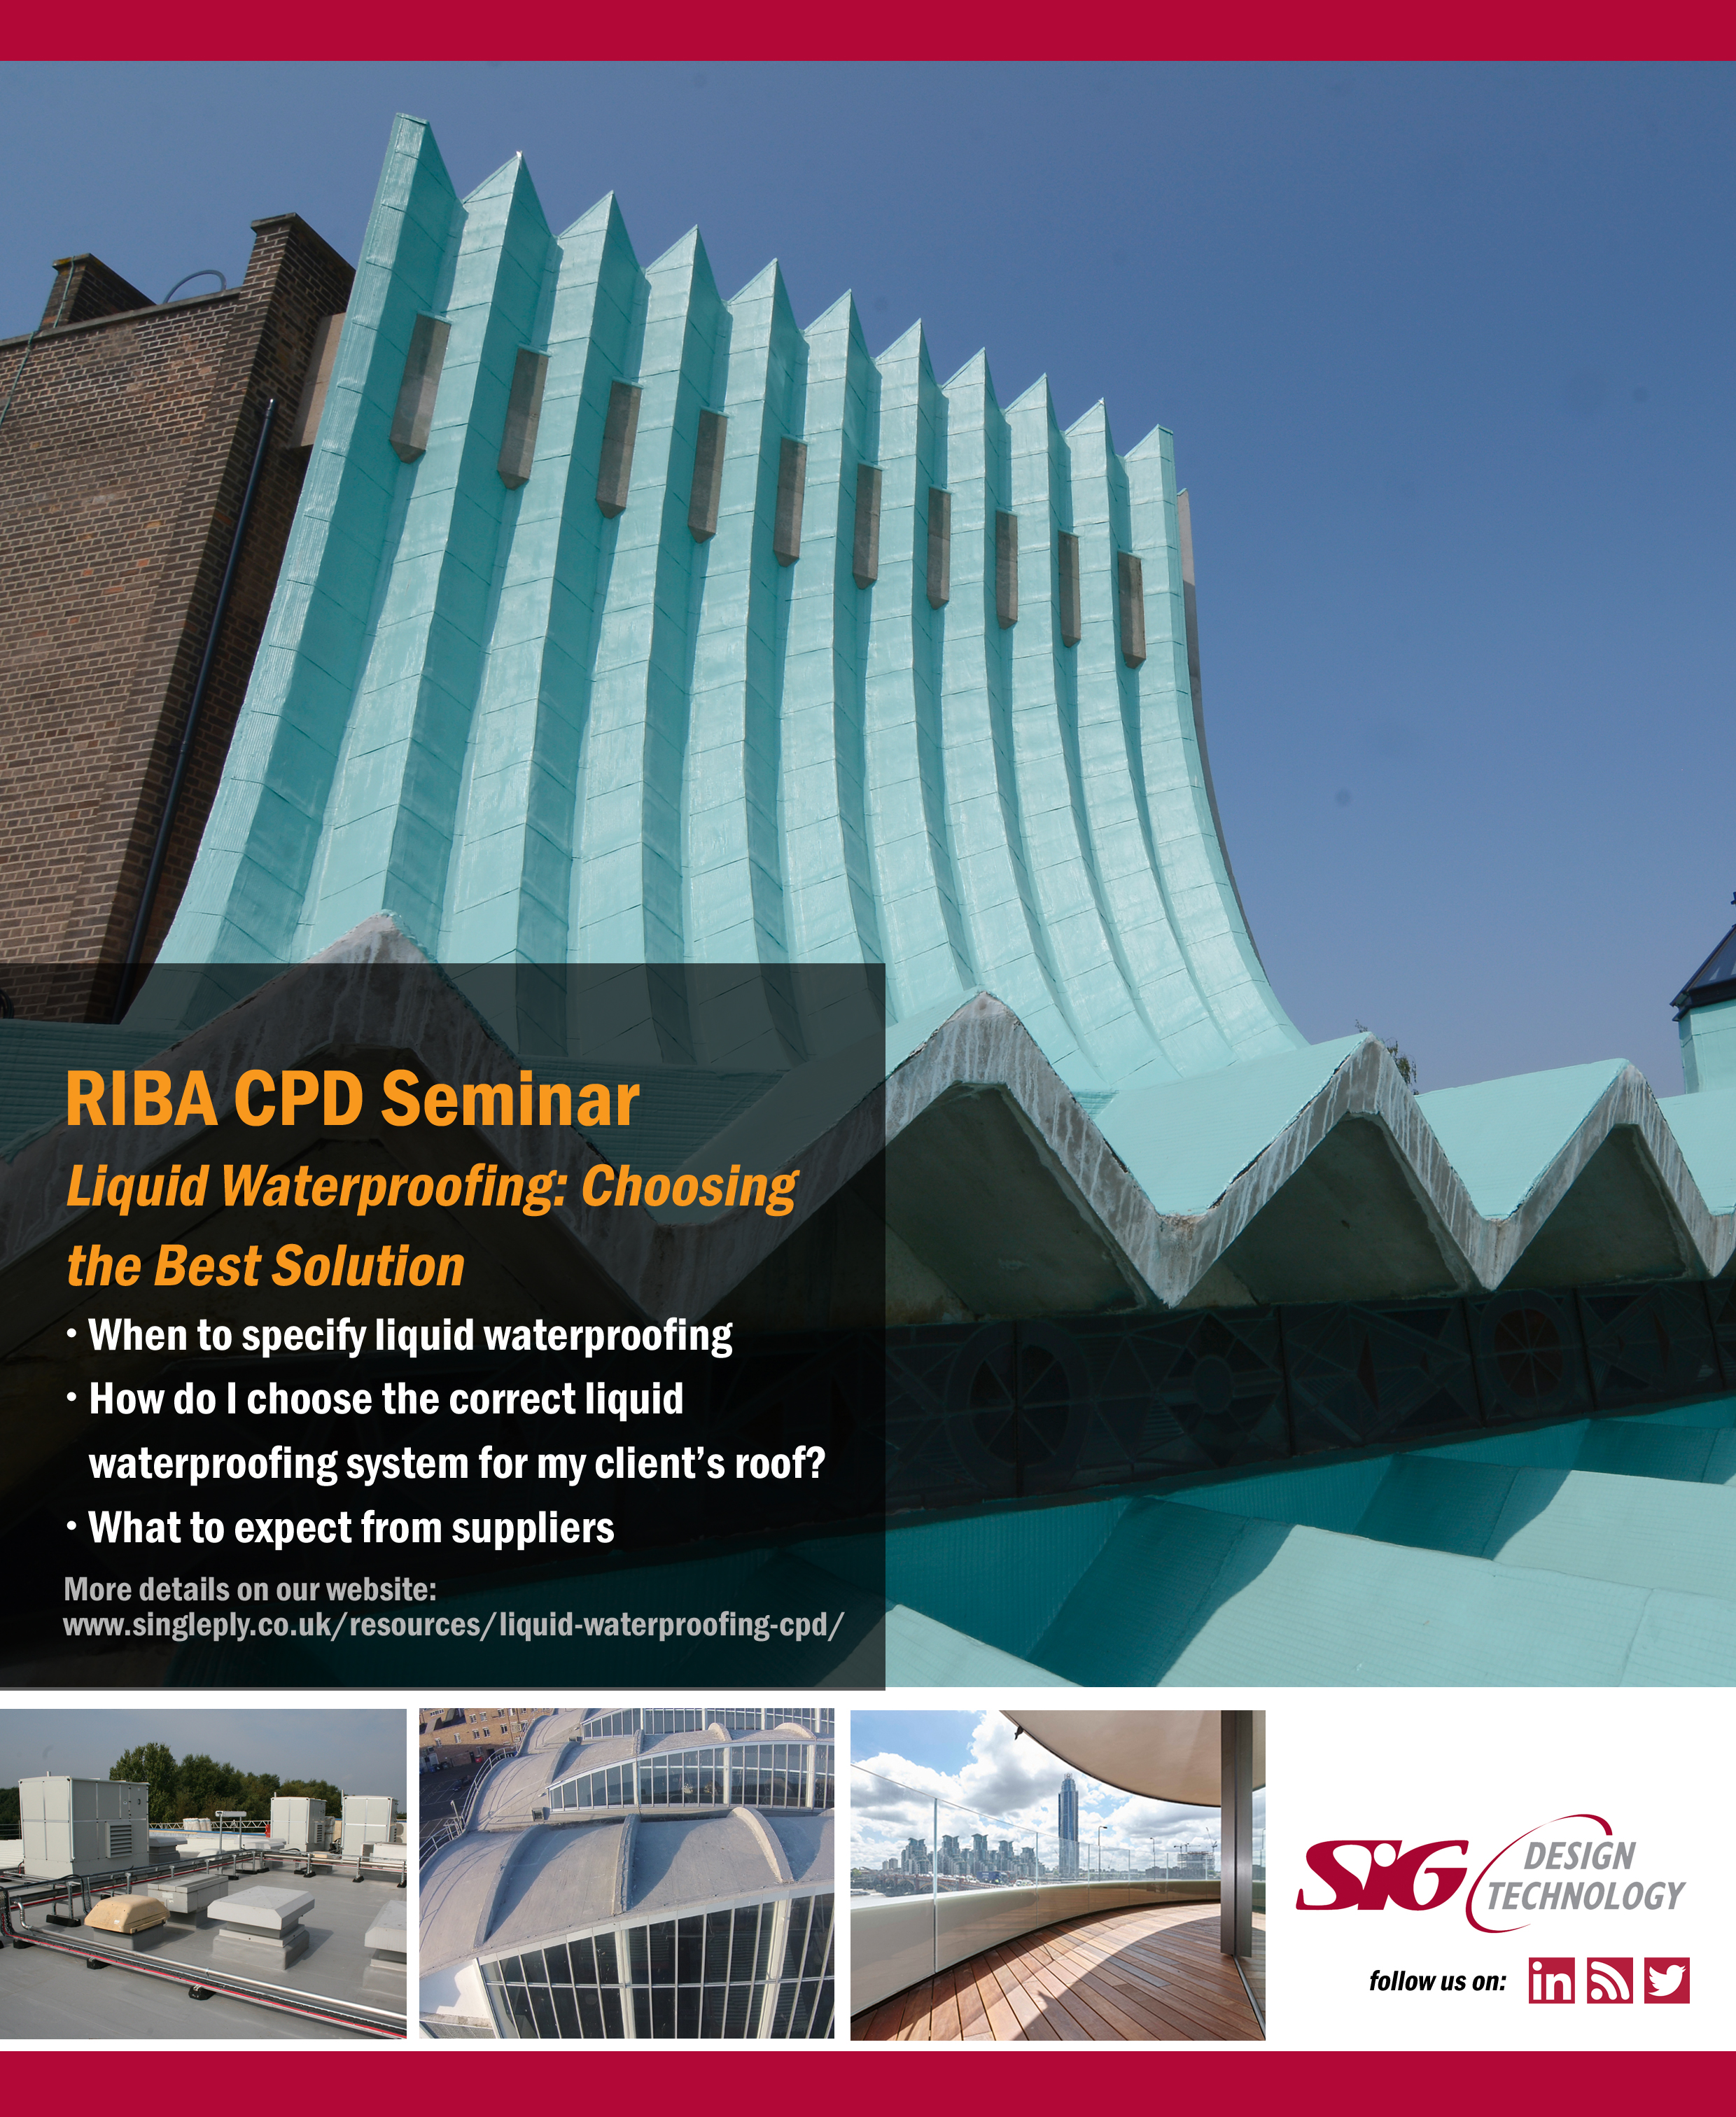 The Best Design Solutions: SIG Design & Technology RIBA Approved Liquid Waterproofing CPD